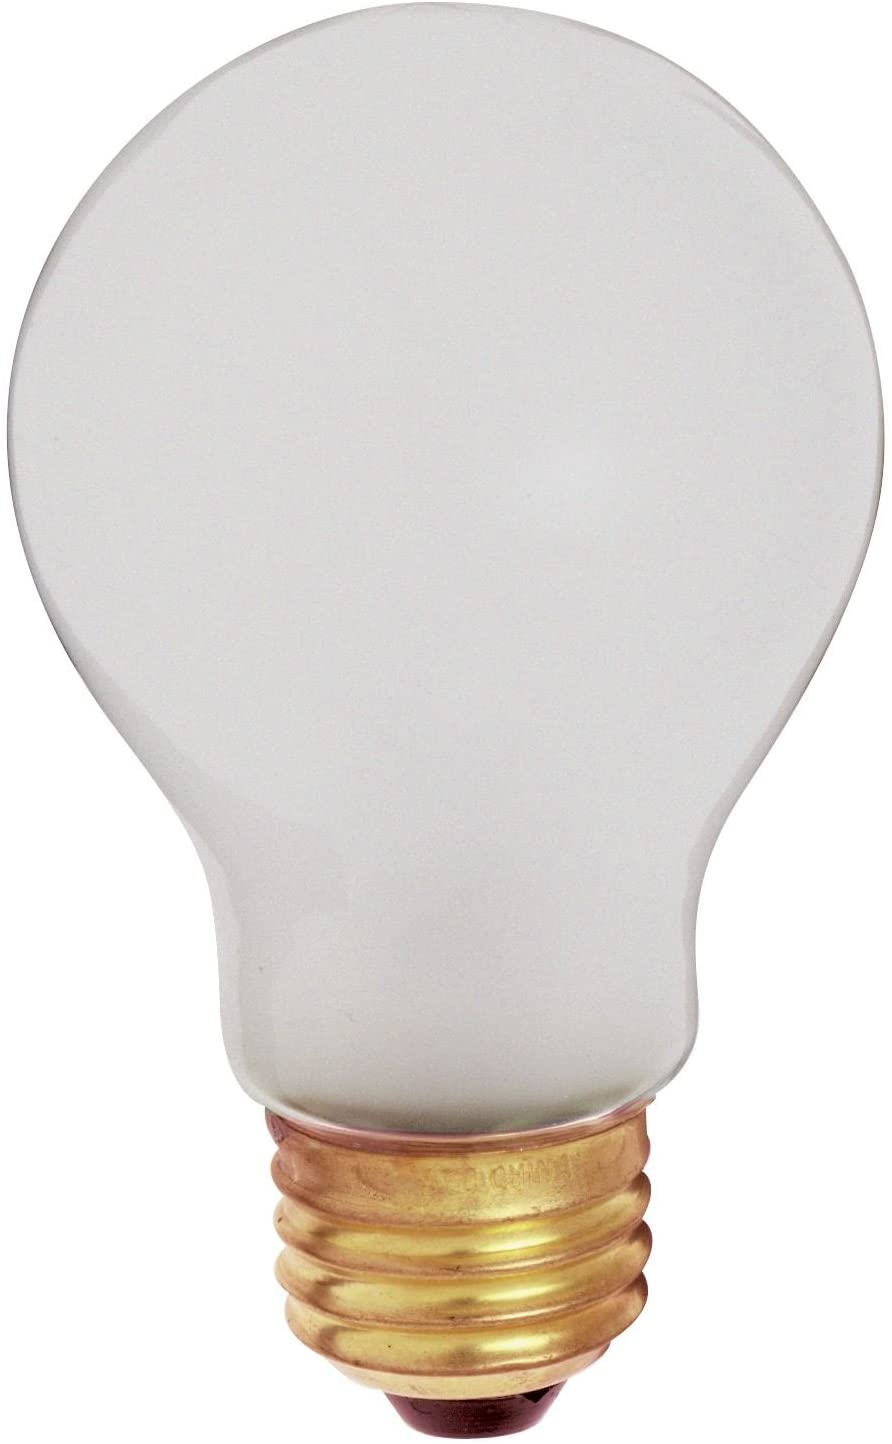 Satco 60A/RS/TF/2PK Incandescent Shatter Proof, 60W E26 A19, Frosted Bulb [Pack of 12]